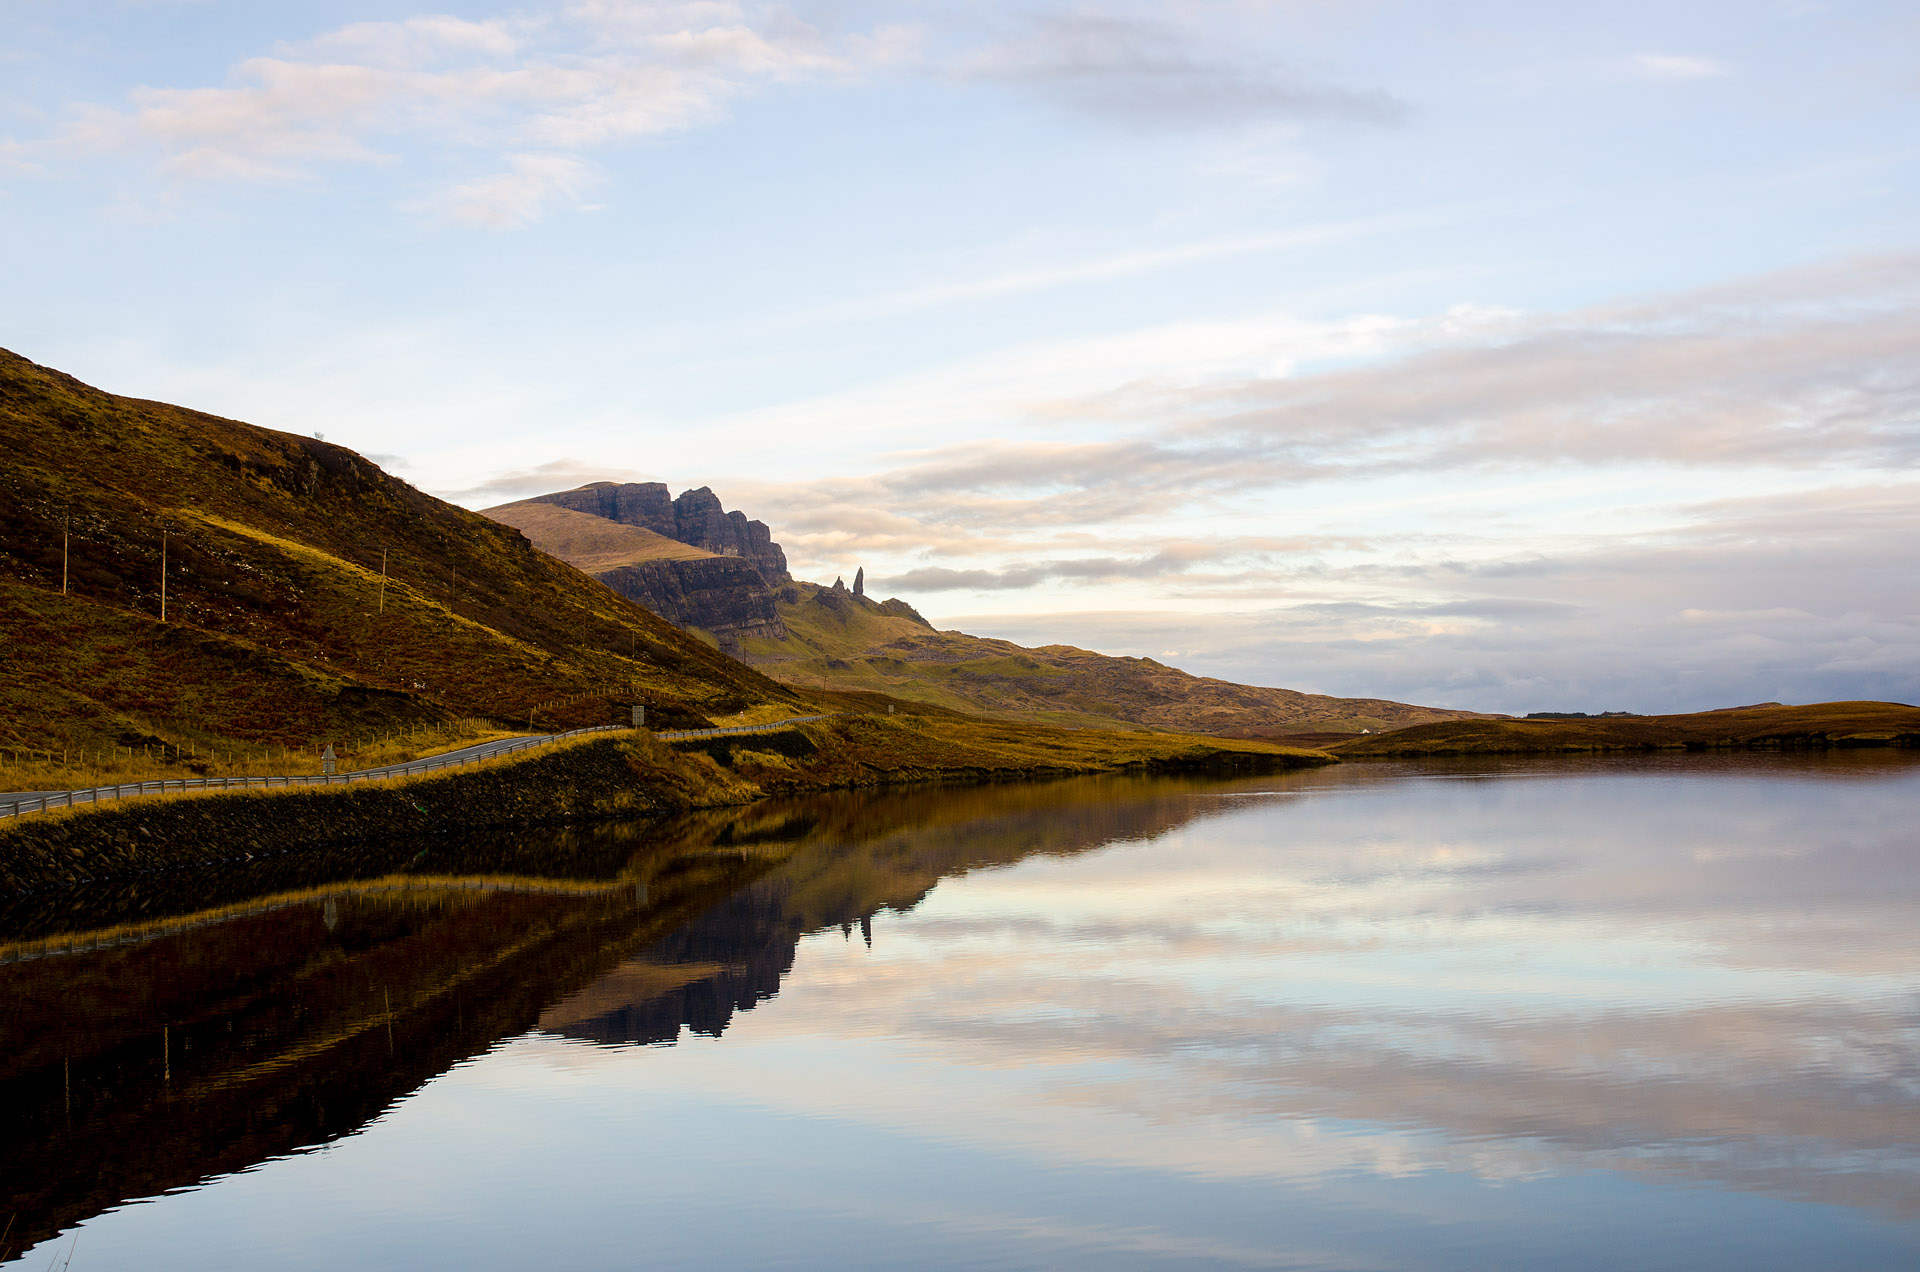 Old Man of Storr & Loch Leathan